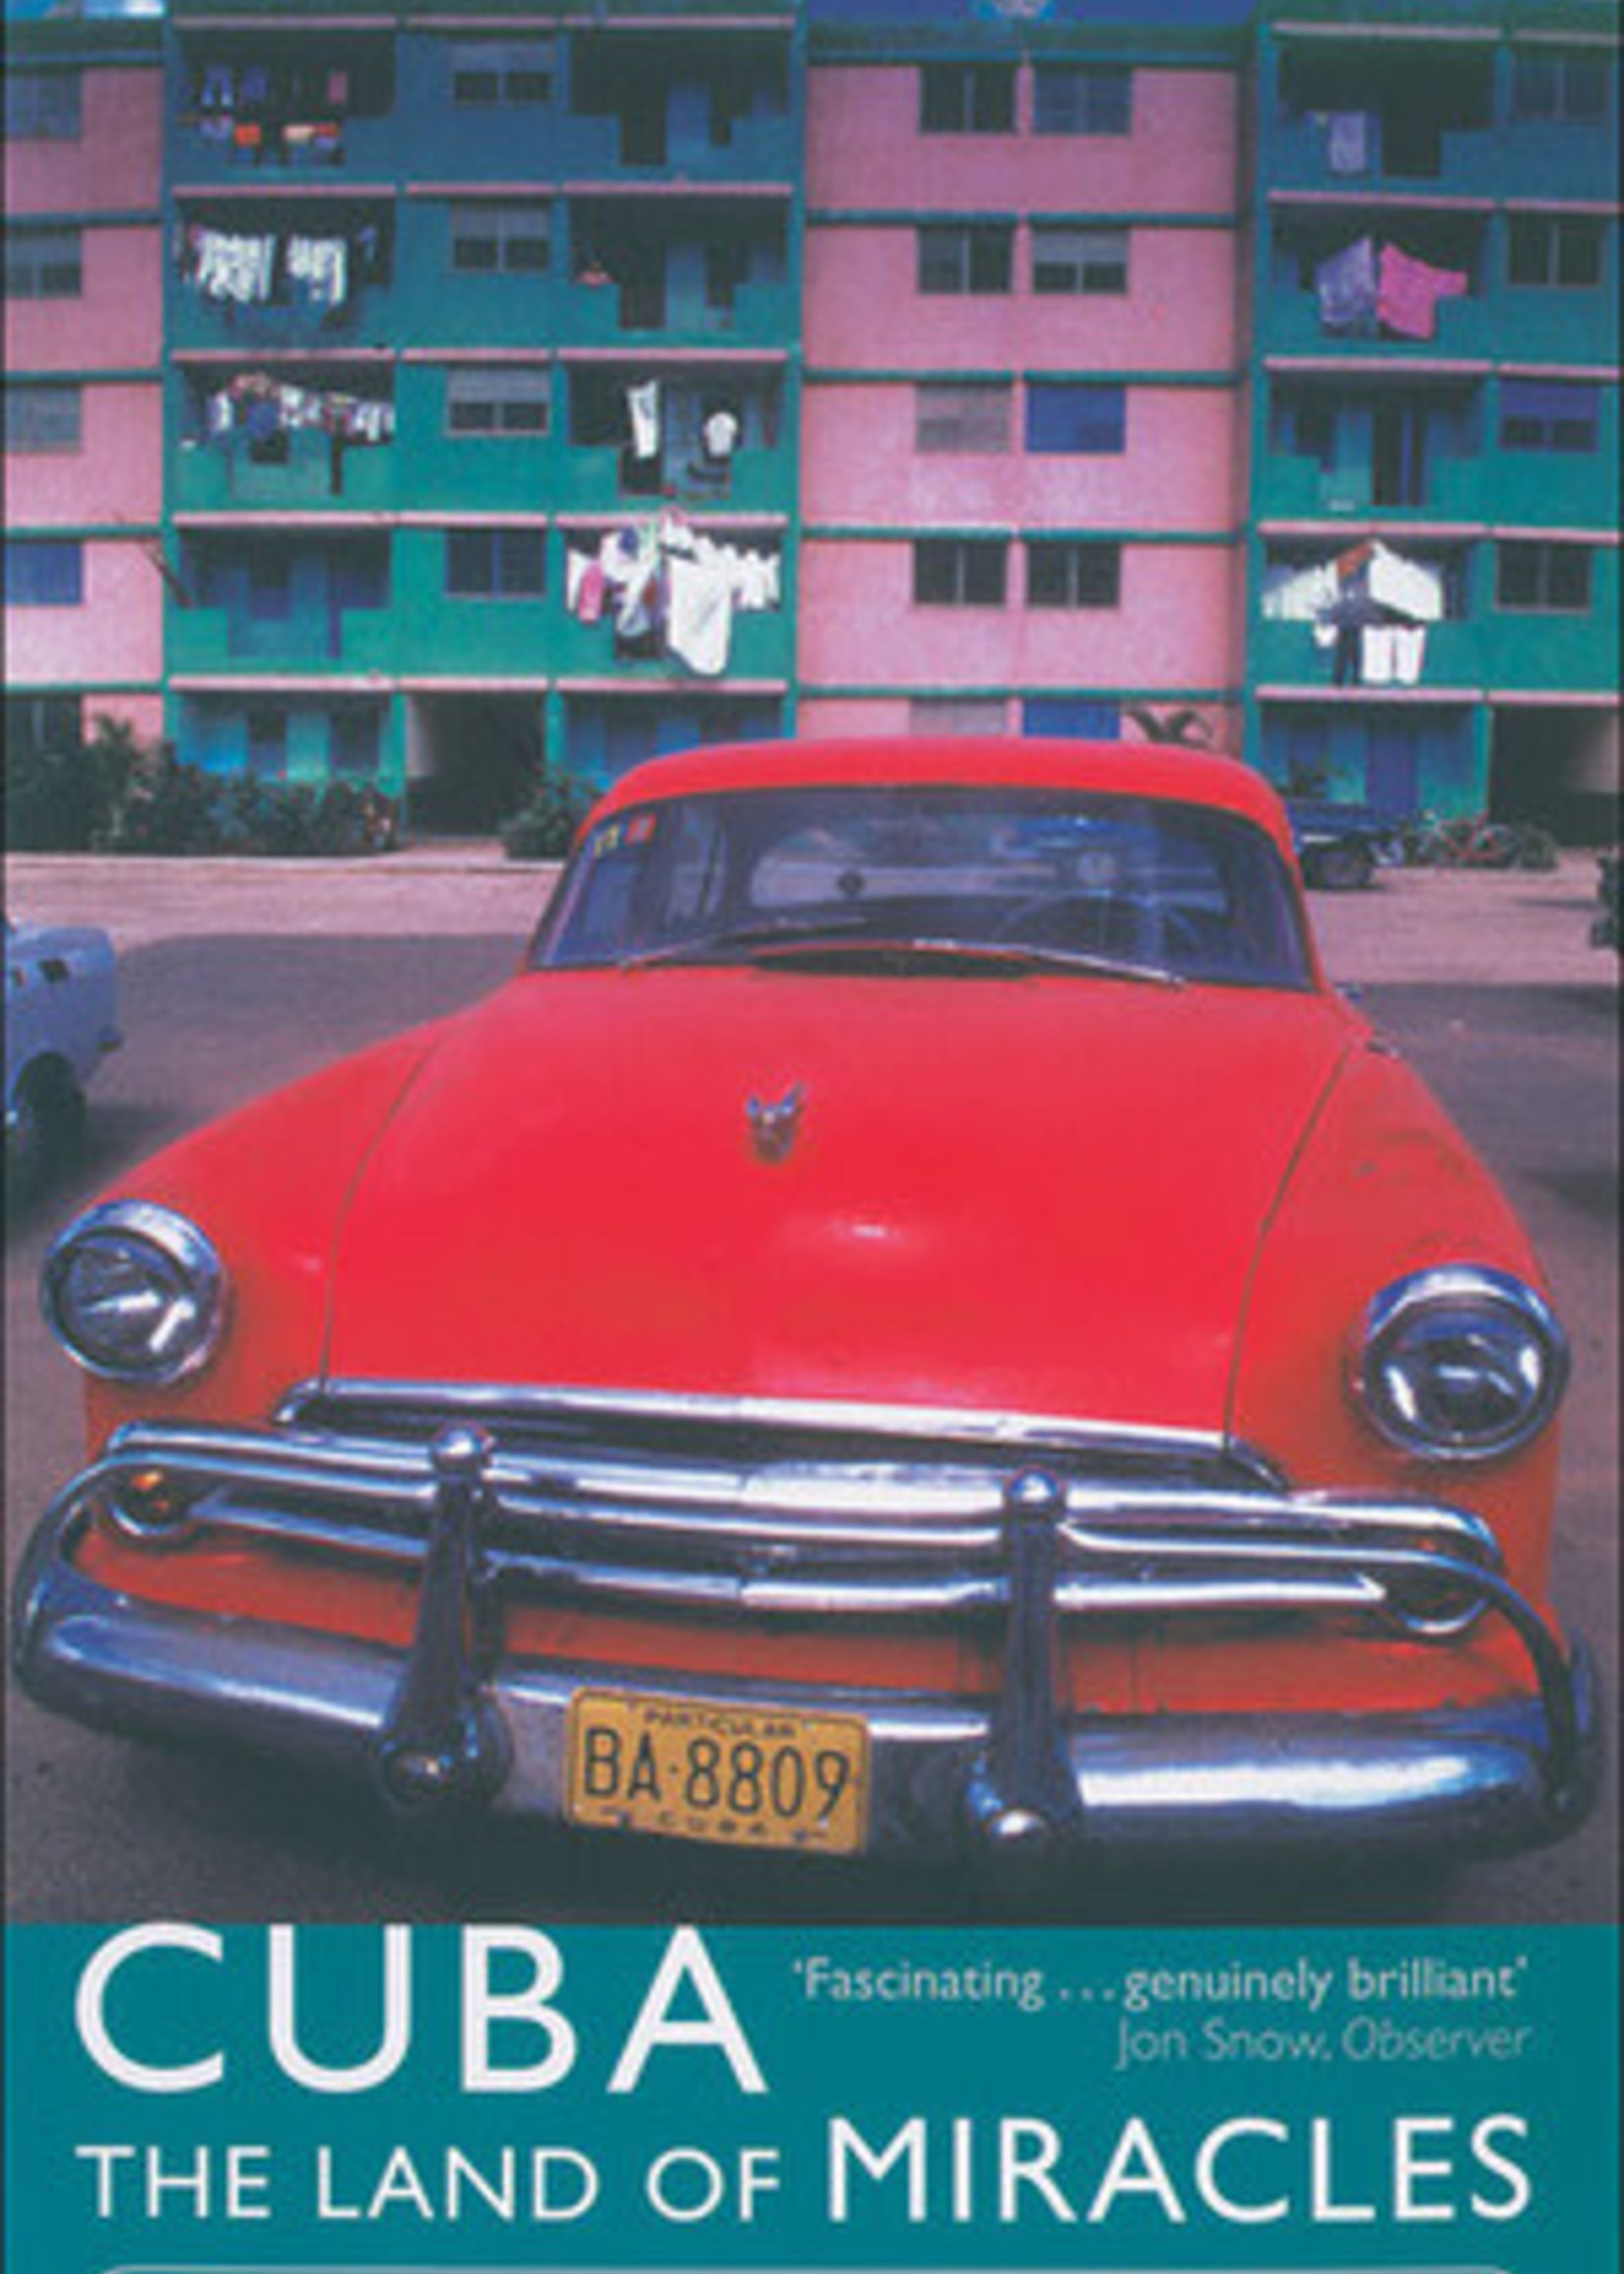 USED - Cube - The Land of Miracle: A Journey Through Modern Cuba by Stephen Smith